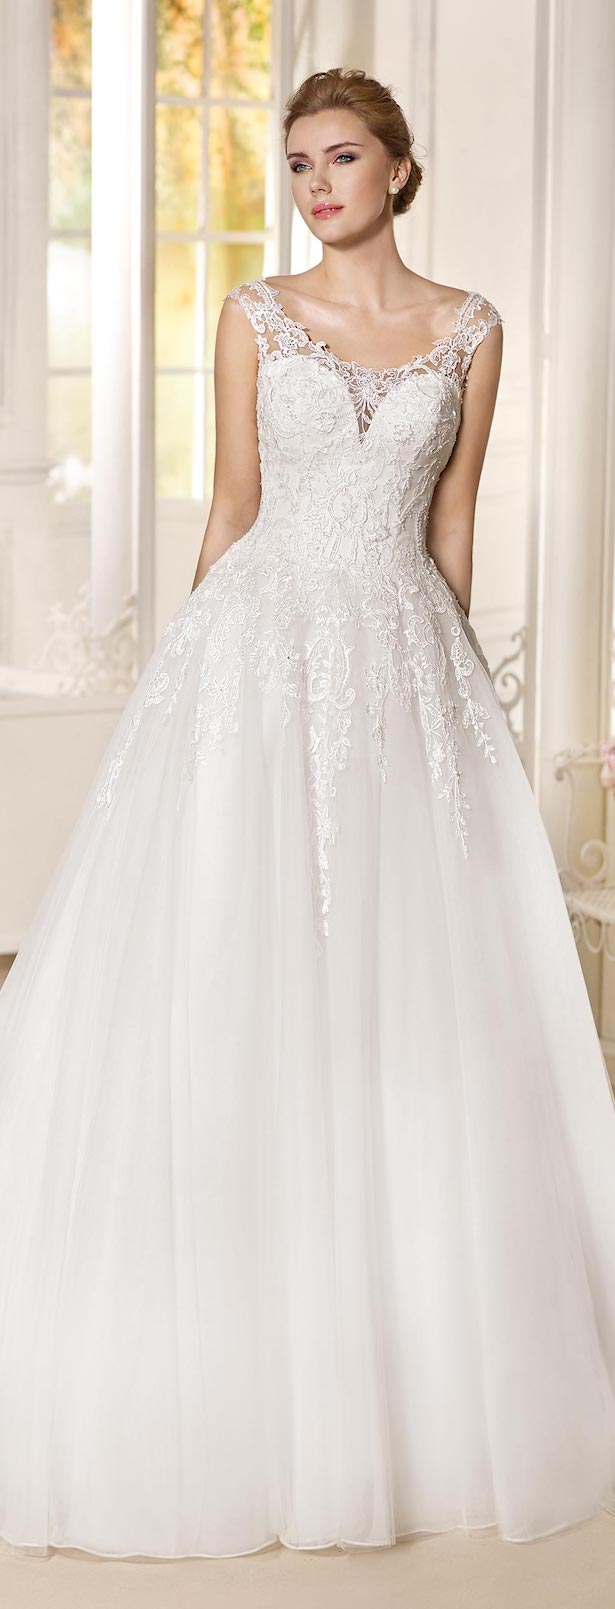 Sleeveless Lace Ball gown Wedding Dress by Fara Sposa 2017 Bridal Collection